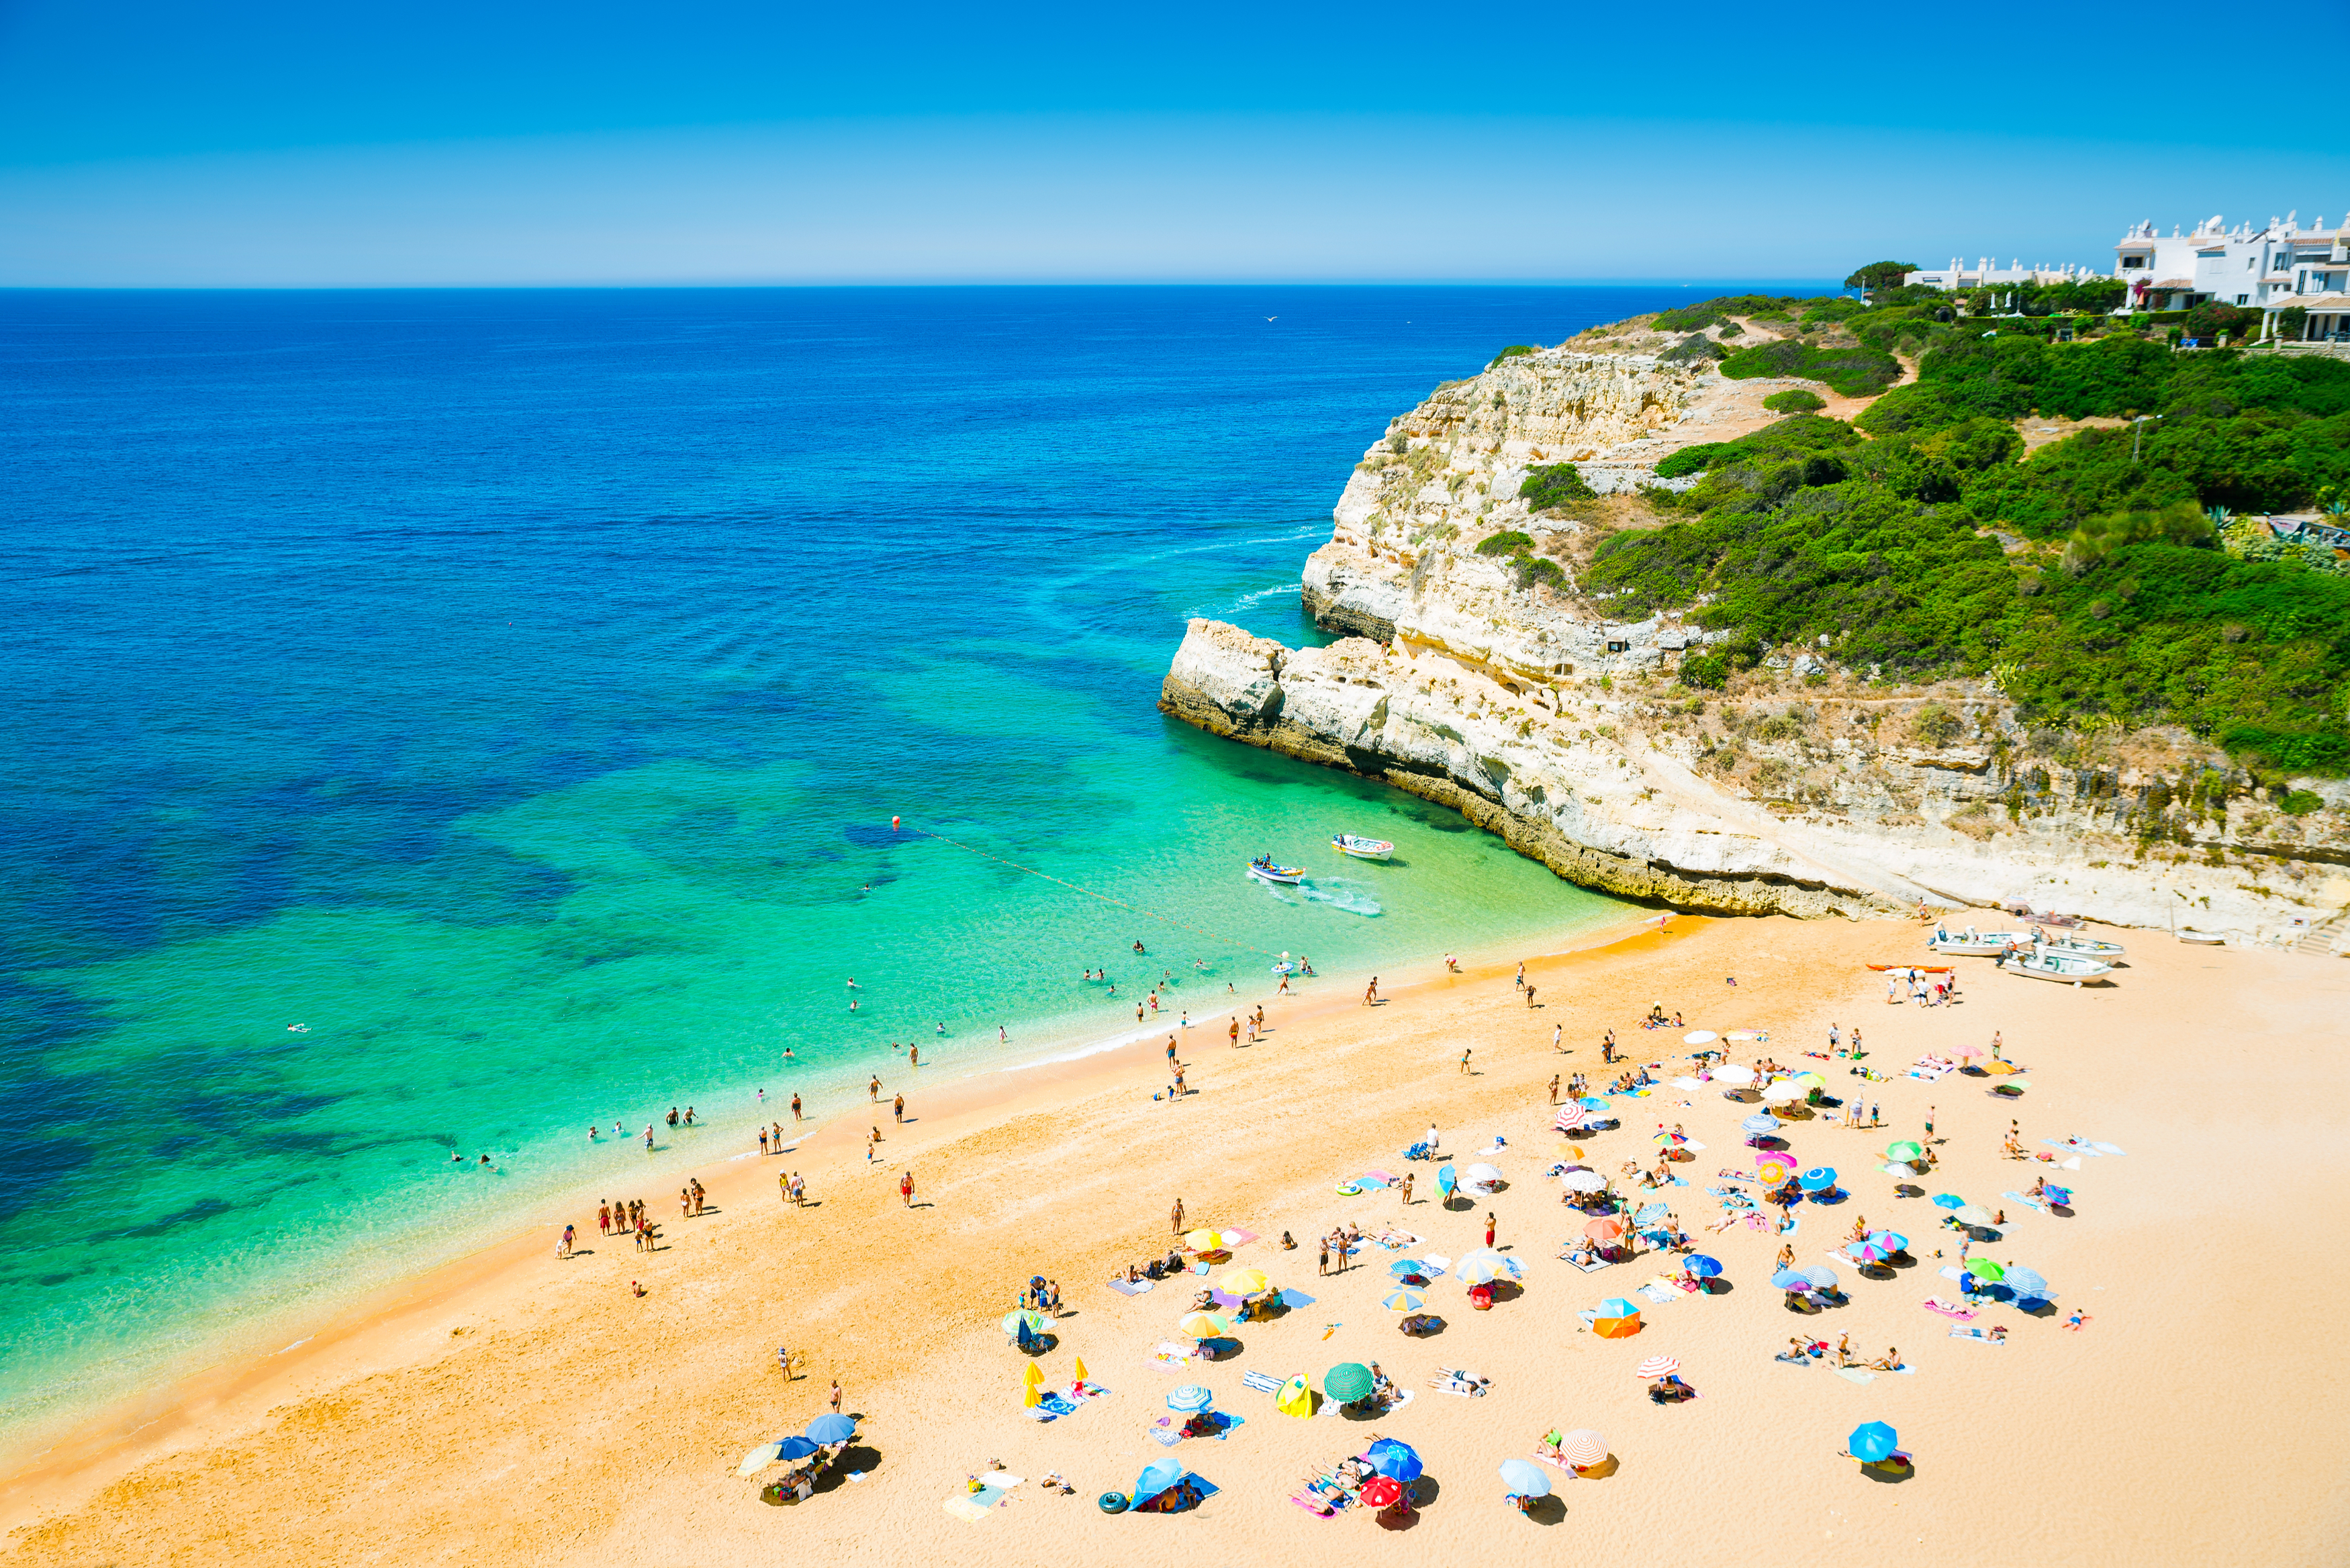 Property for sale in Portugal - 200,696 properties